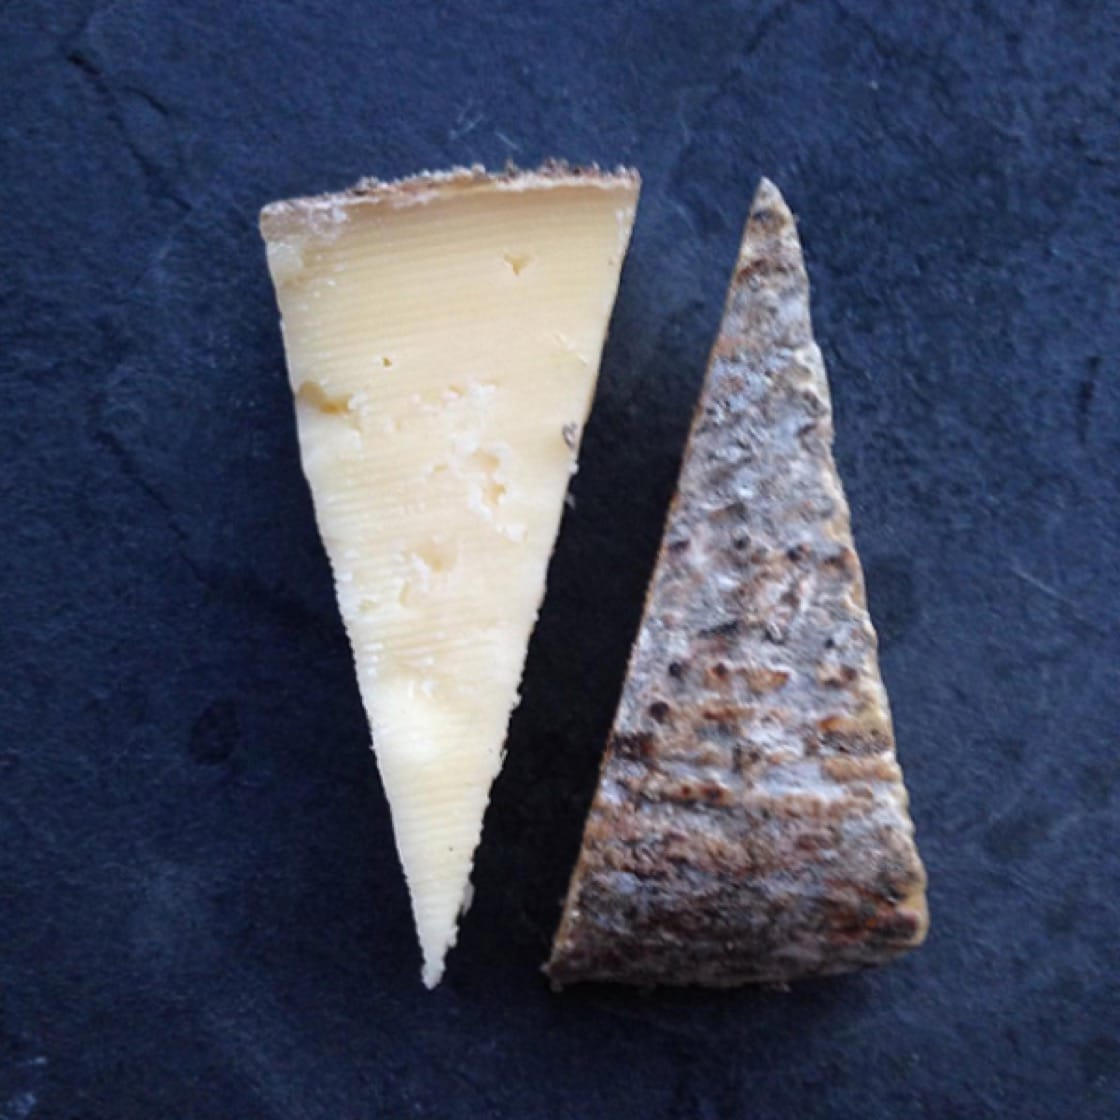 McGrath's Rascal cheese, a semi-soft raw cow's milk that's been aged for three to four months. Photo courtesy of McGrath Cheese.